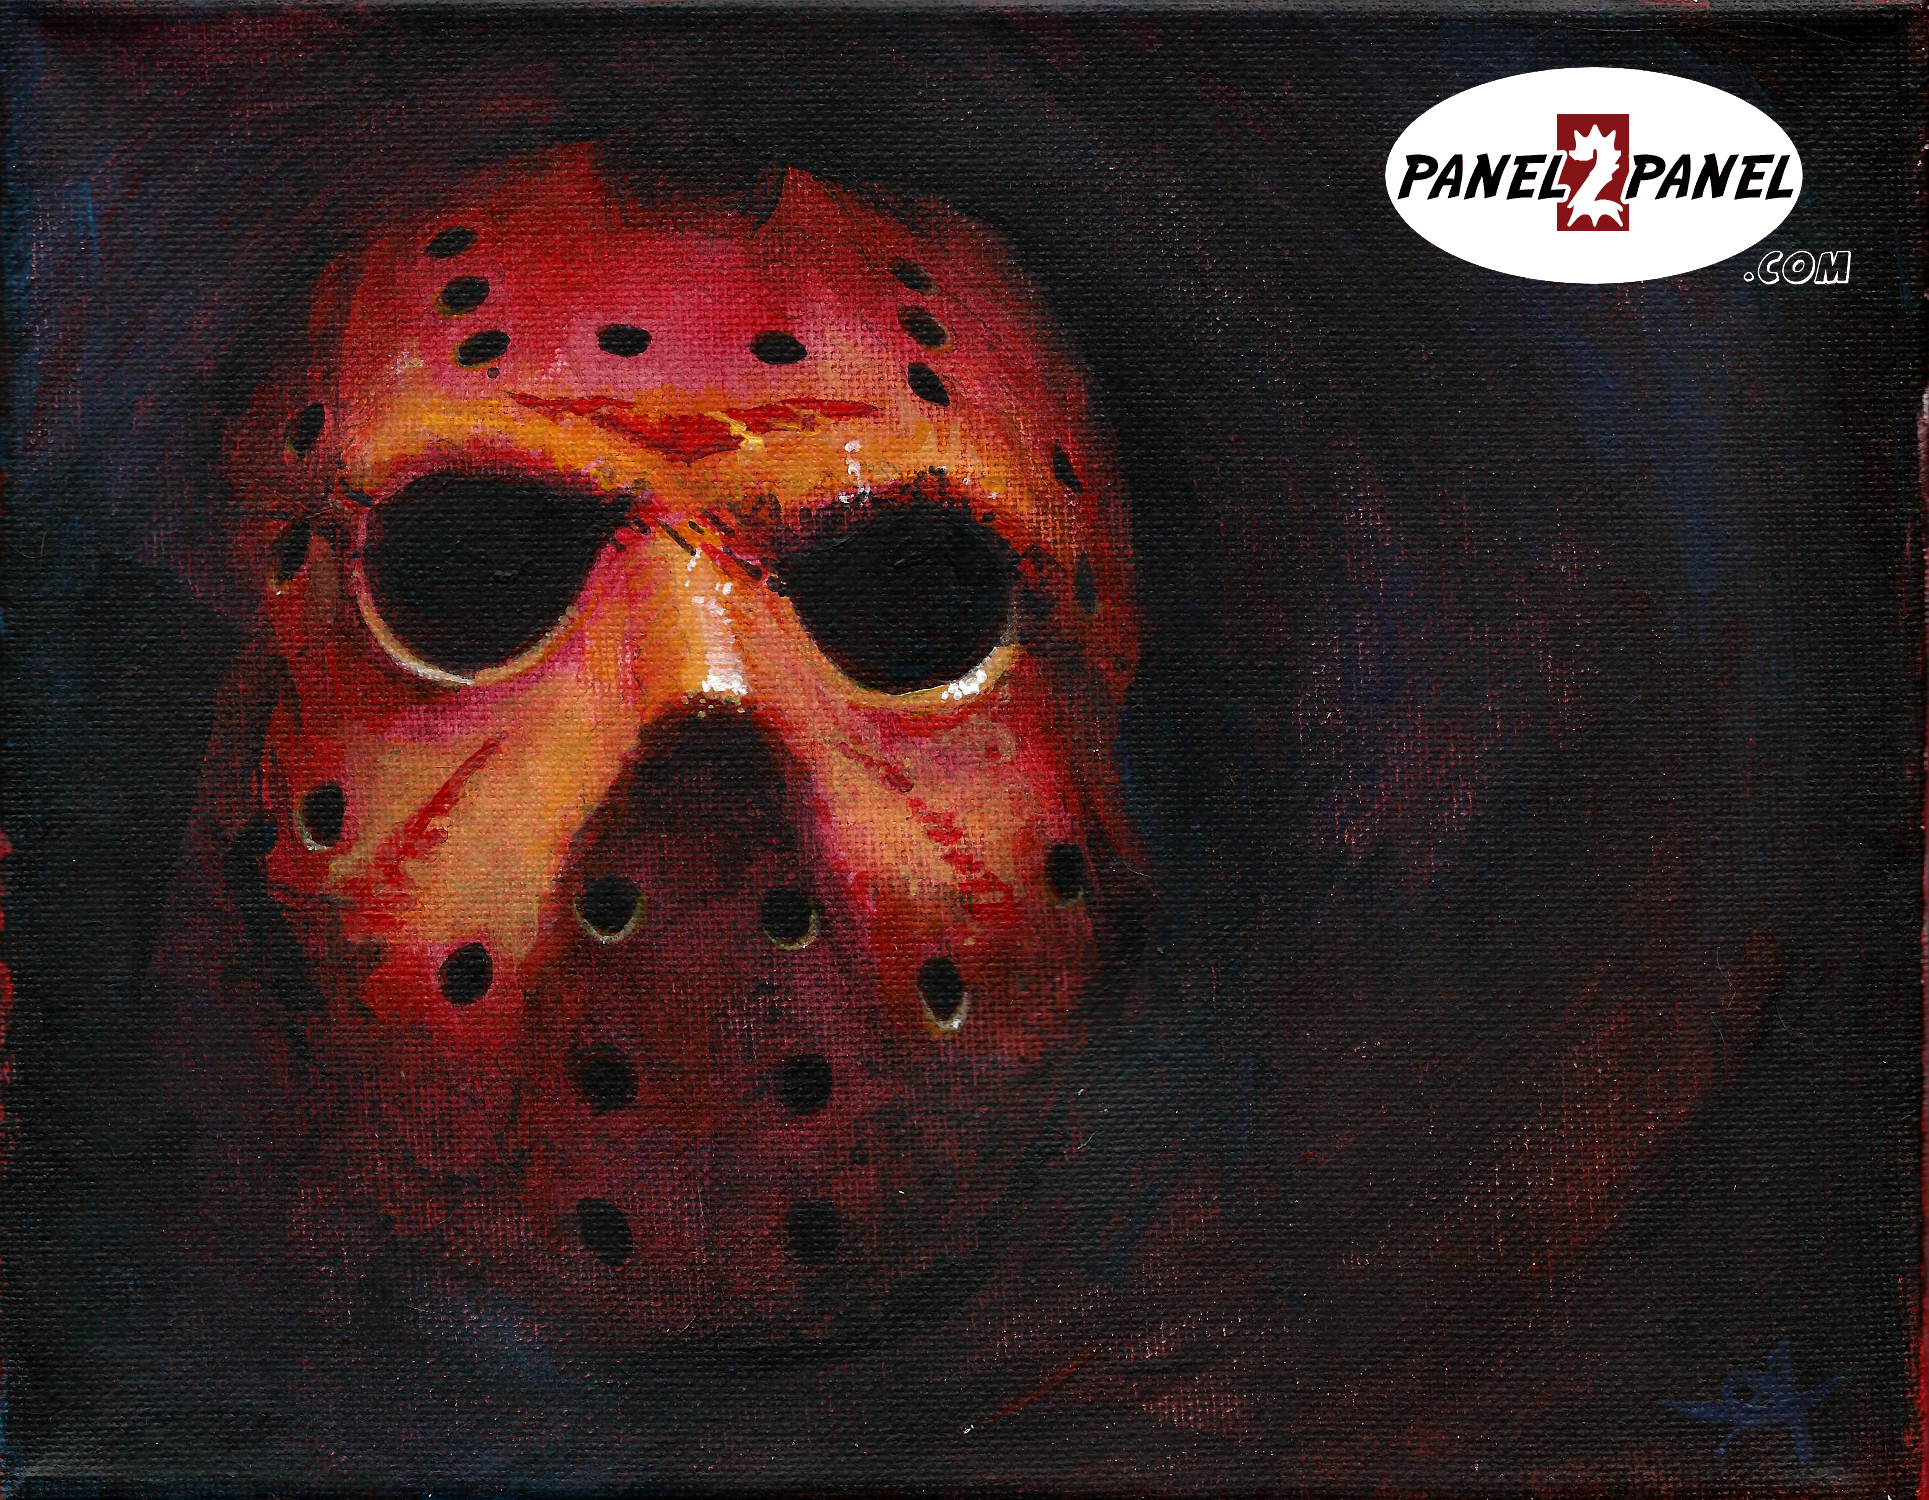 Jason: Friday the 13th